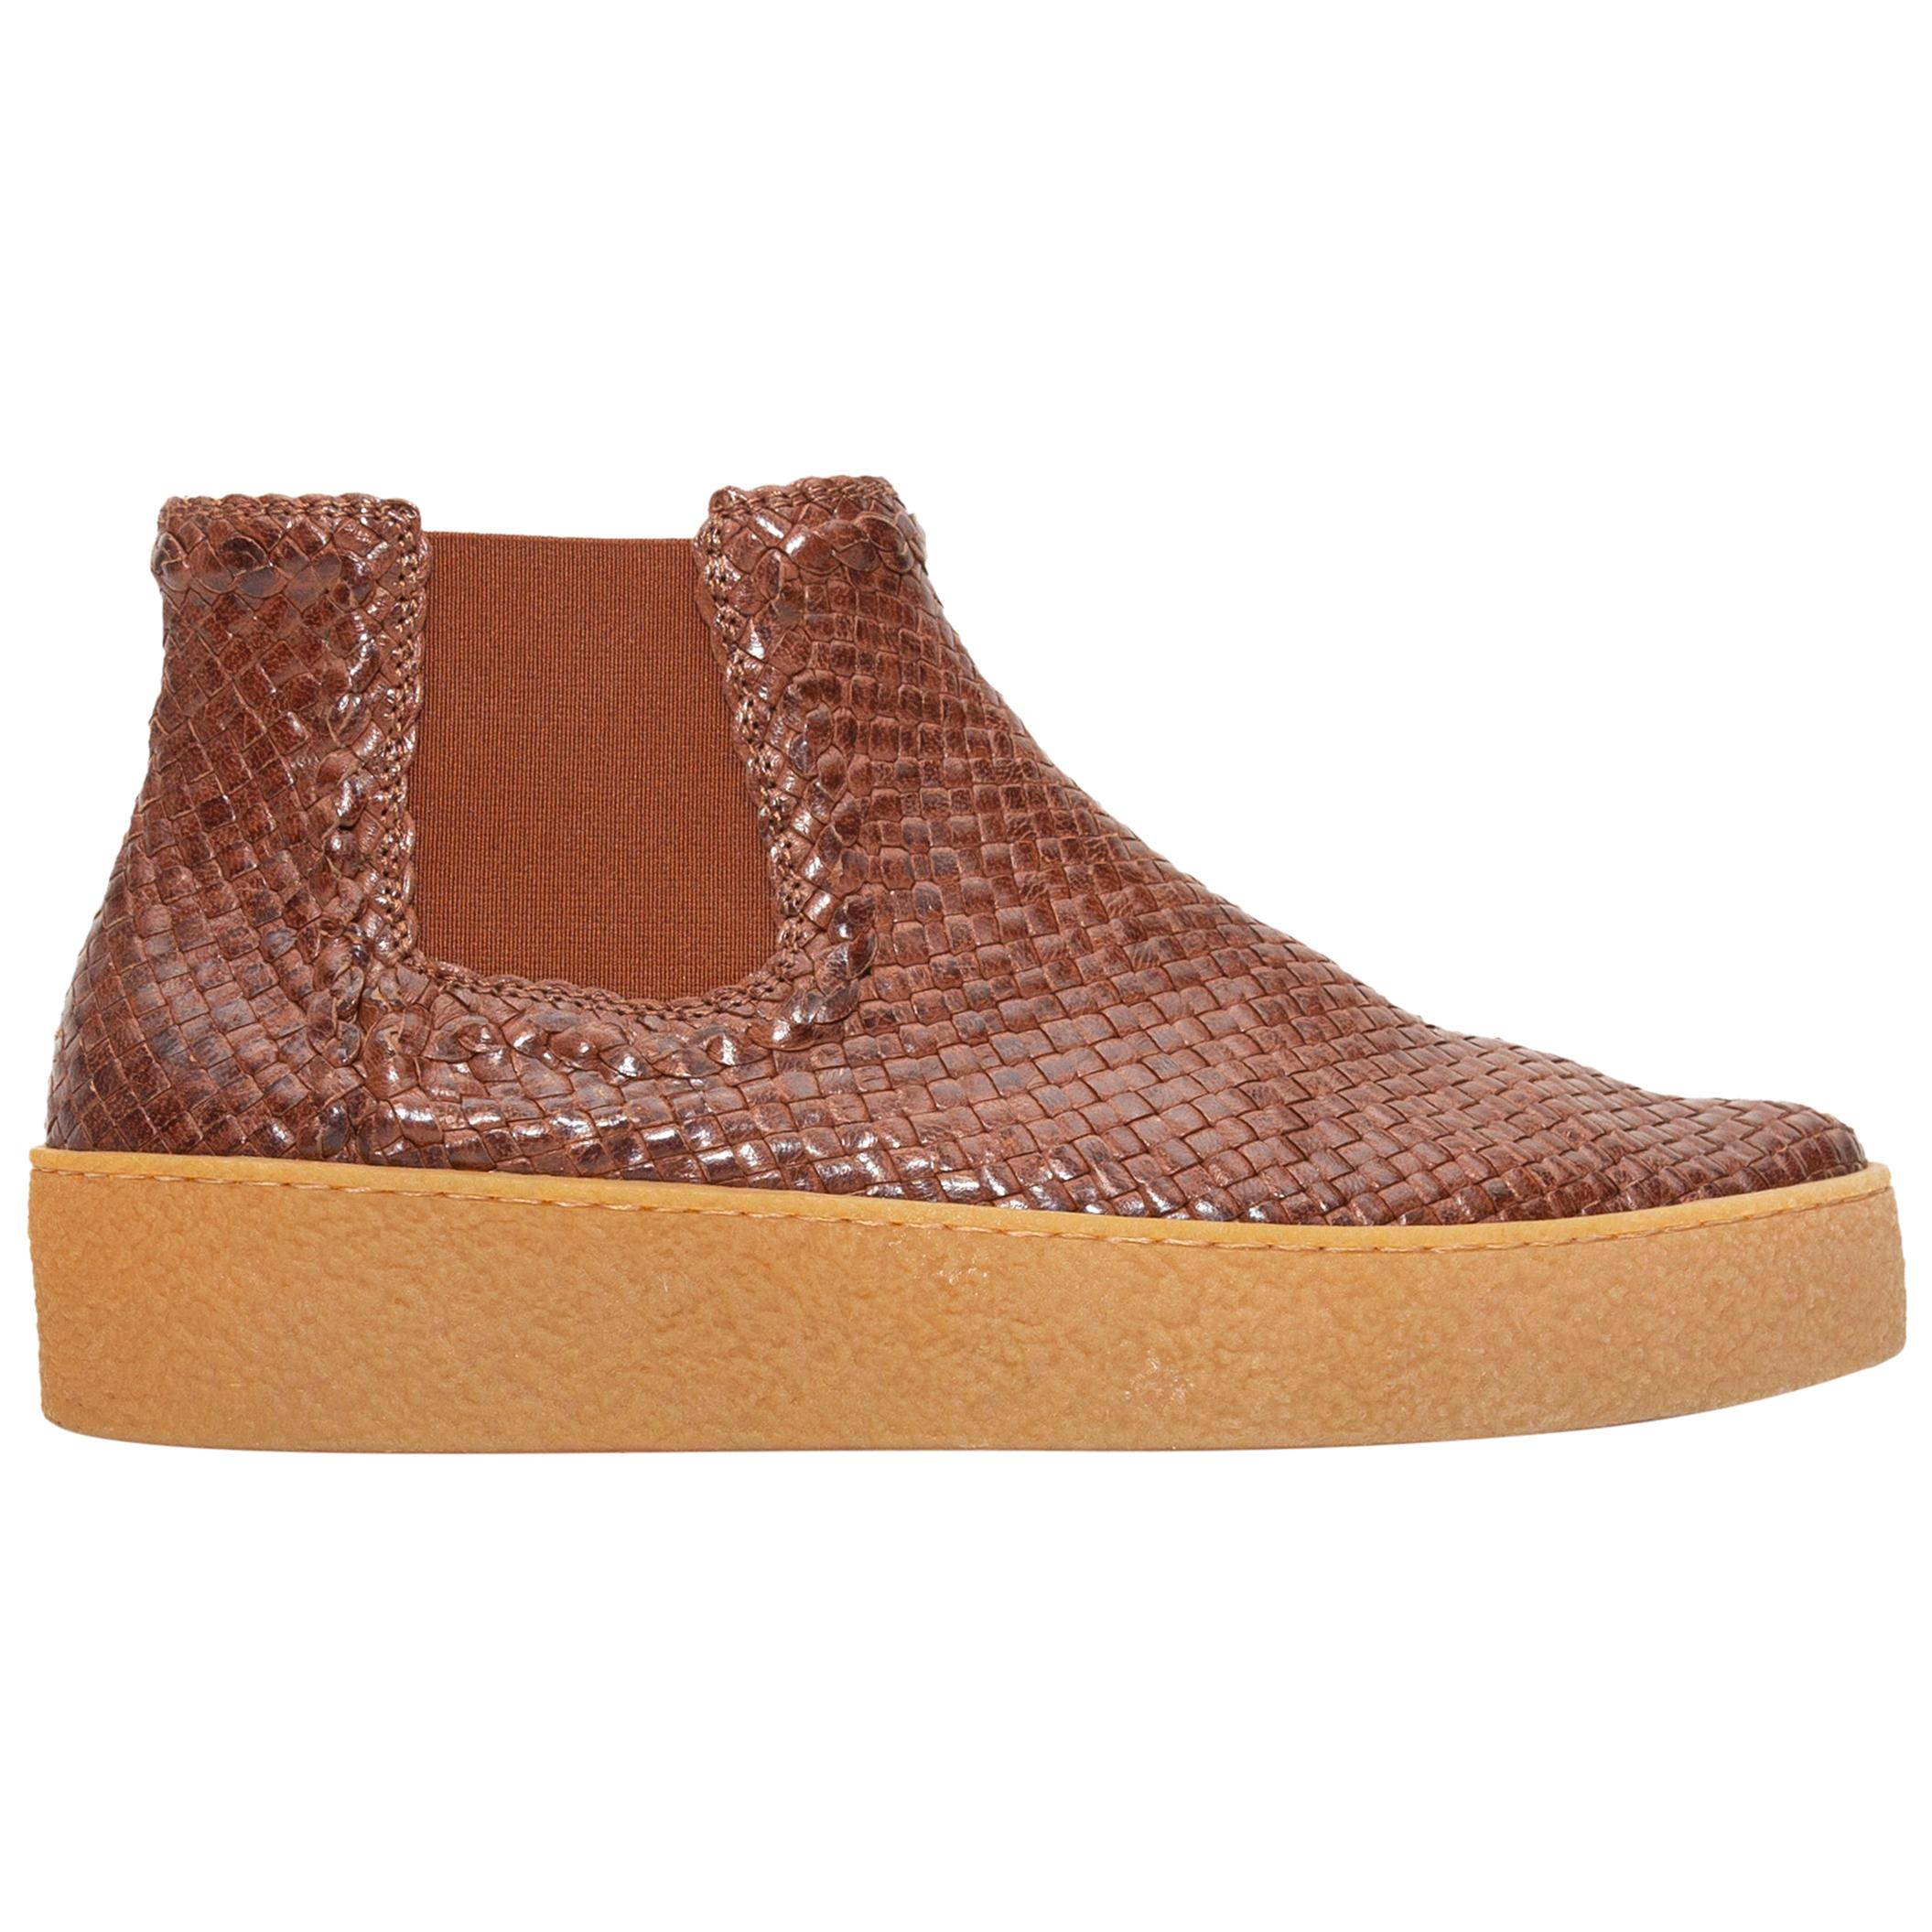 Aquatalia Brown Woven Leather Ankle Boots